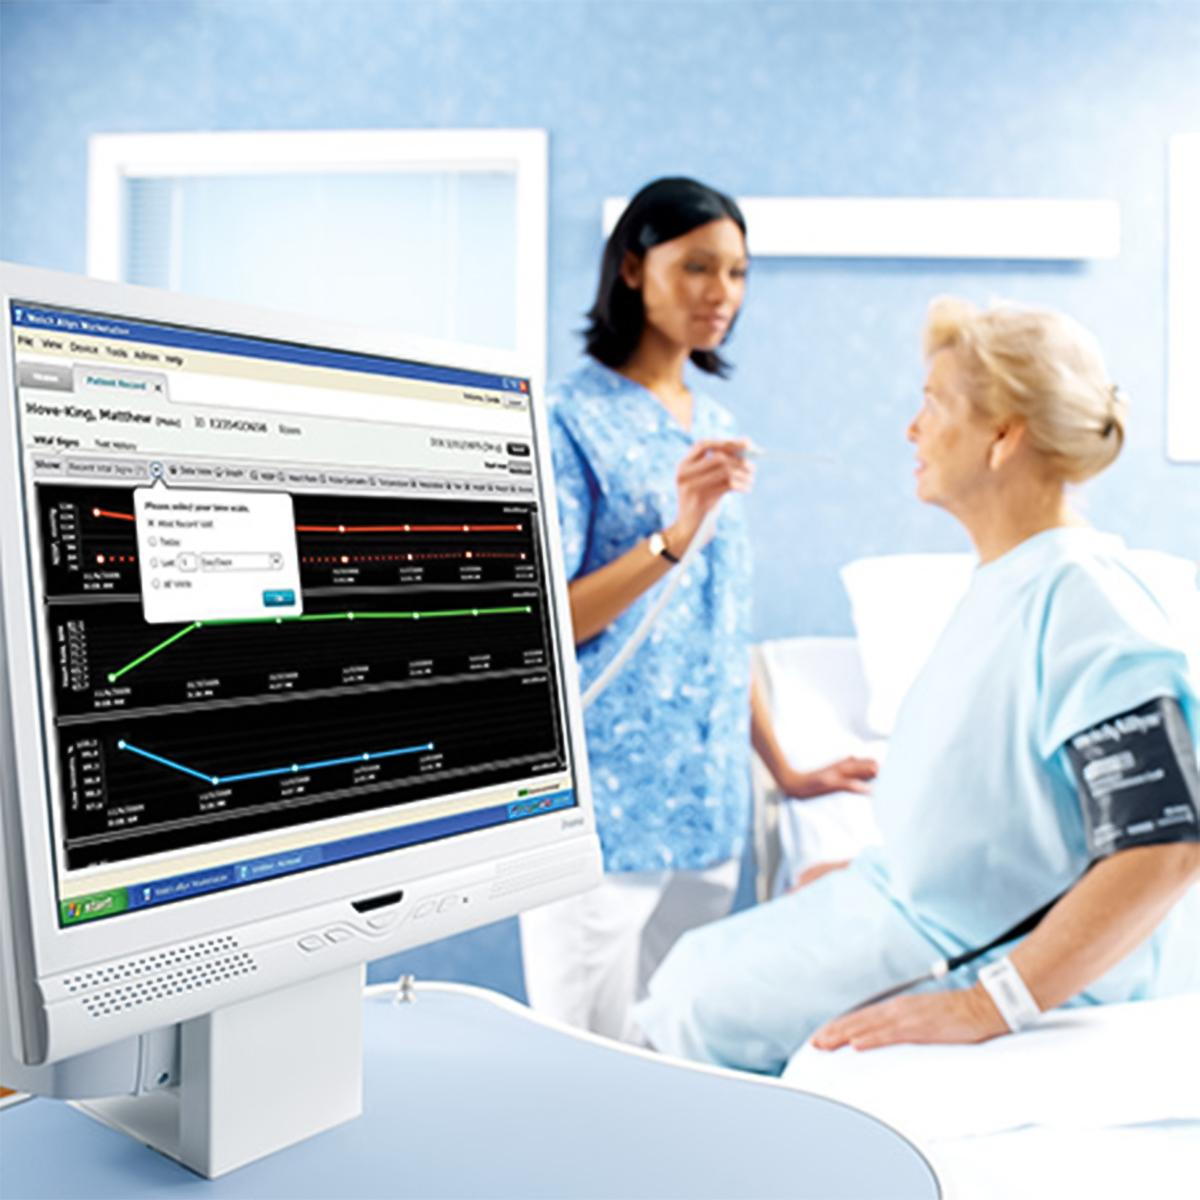 Clinician talking to patient in the background with Connex Vitals Management Software appearing on a desktop computer screen in the foreground